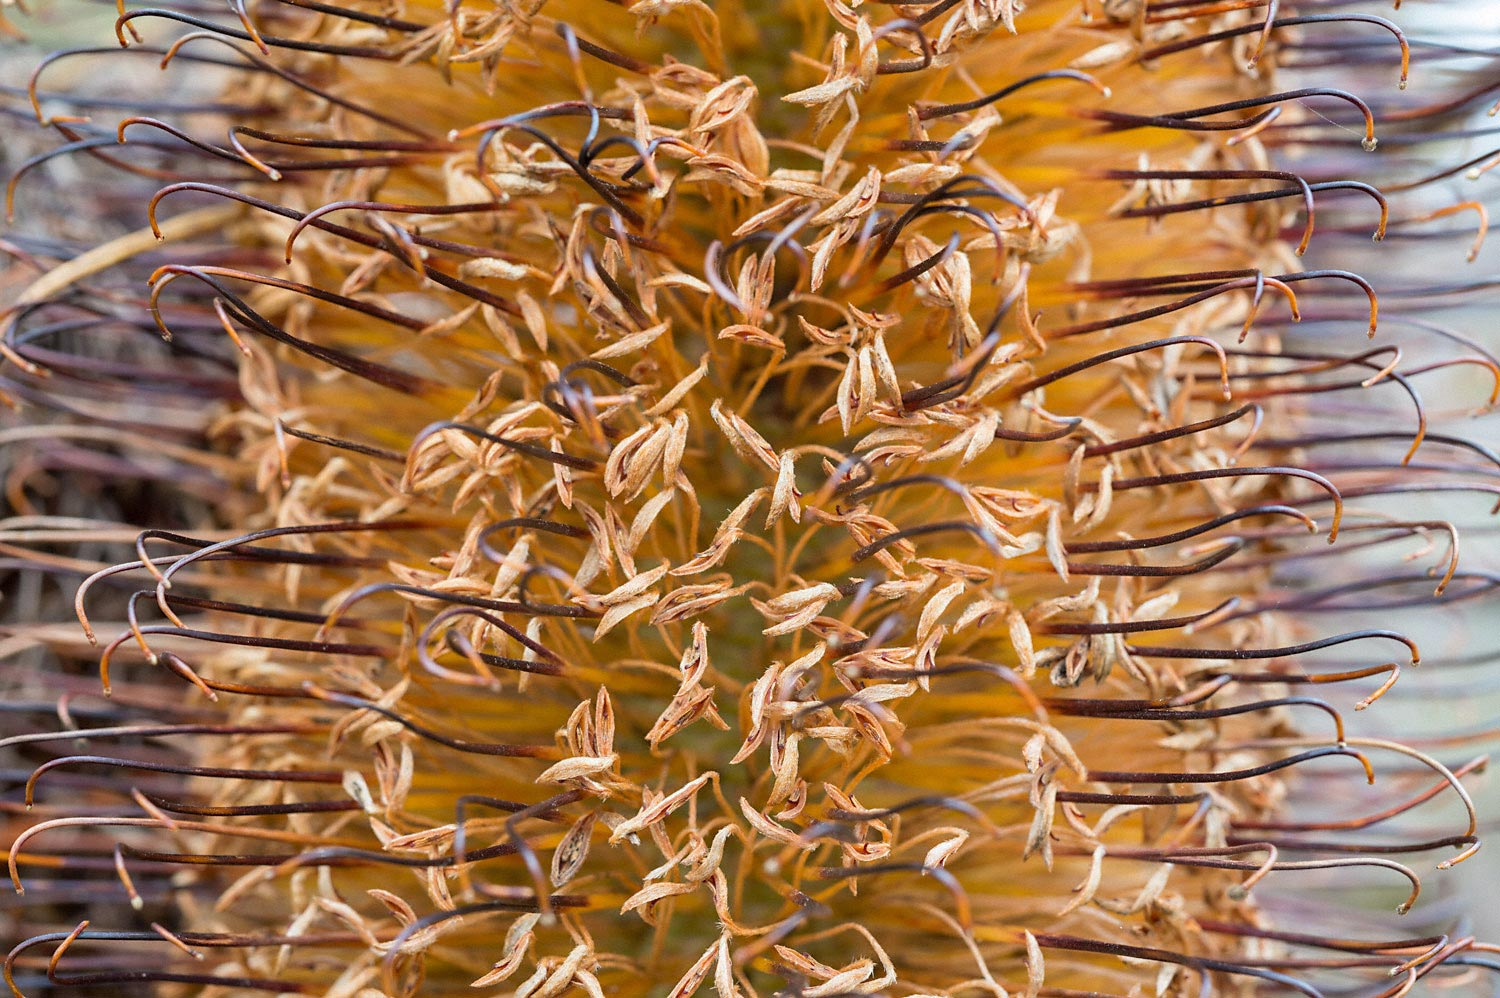 Warren-Hinder-Banksia-Detail-Breaside-Blackheath-tn.jpg